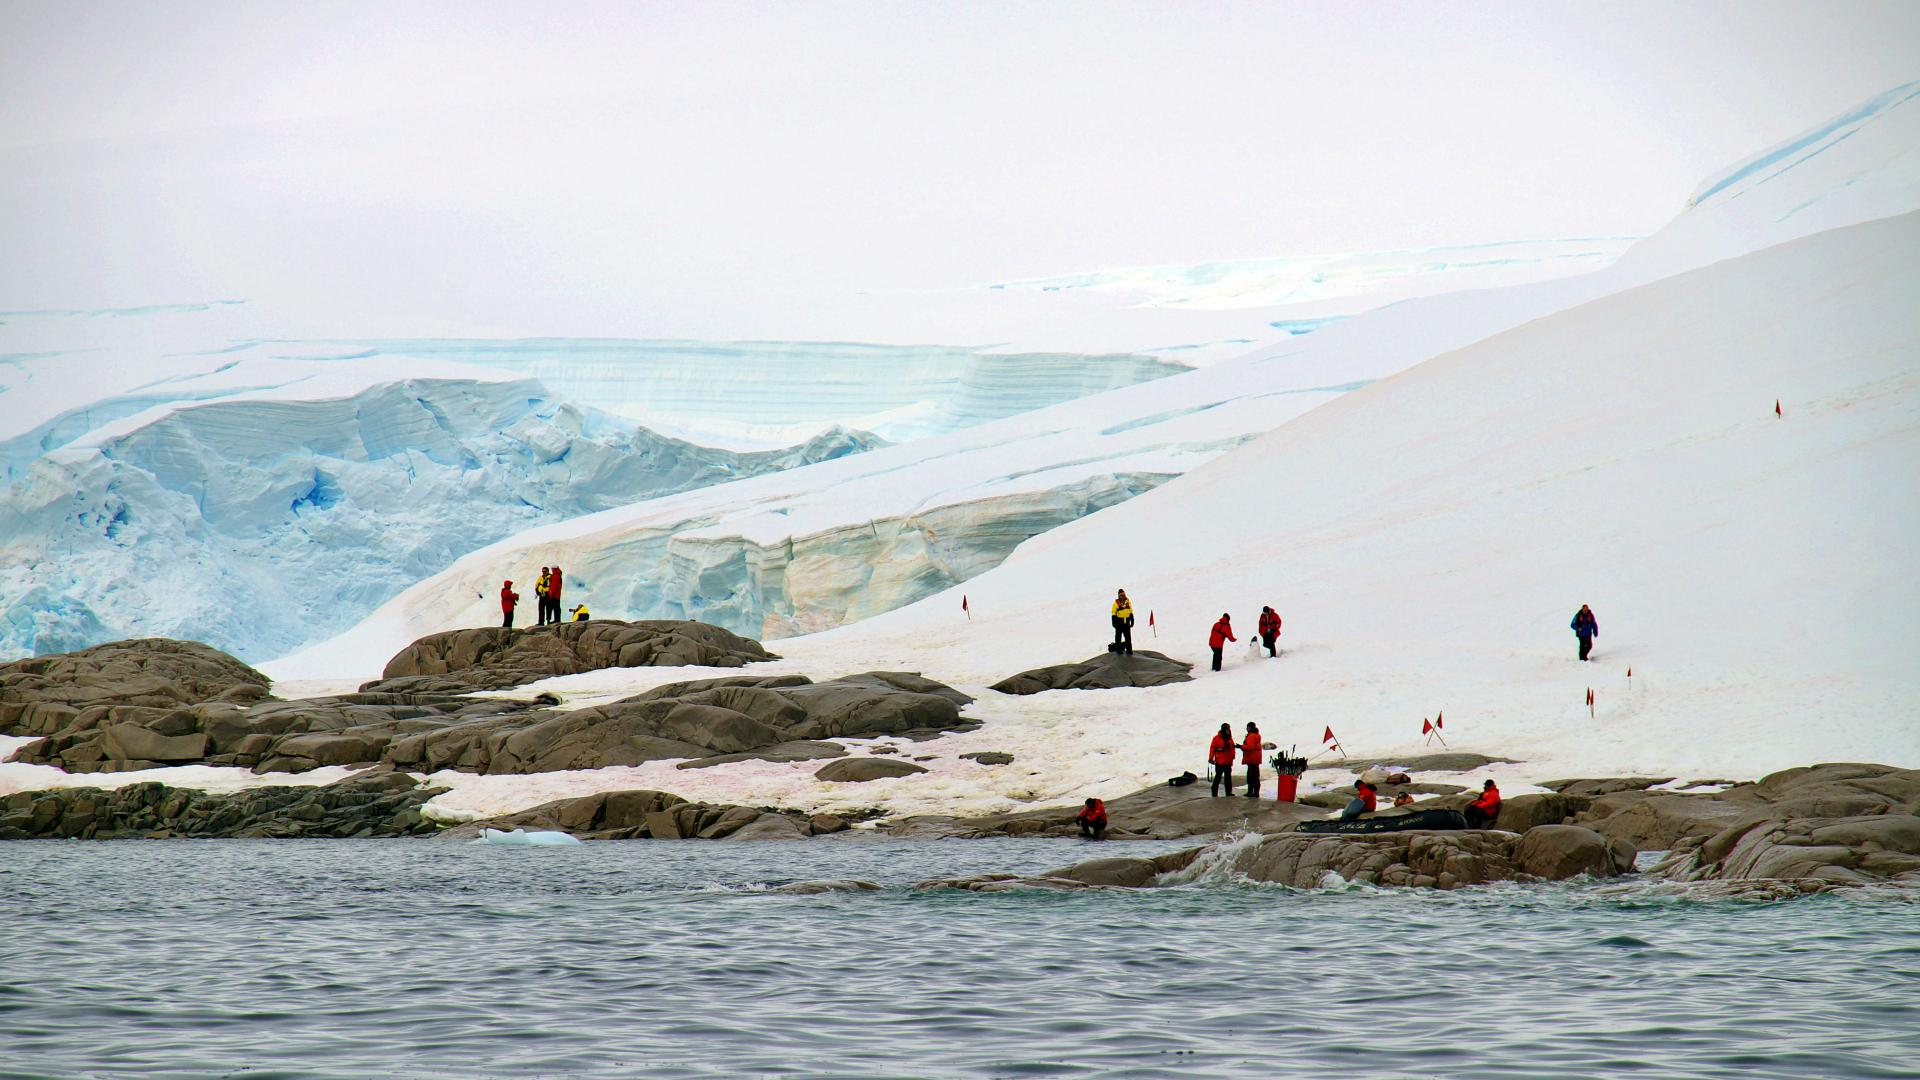 Antarctica: Discovery and Learning Voyage